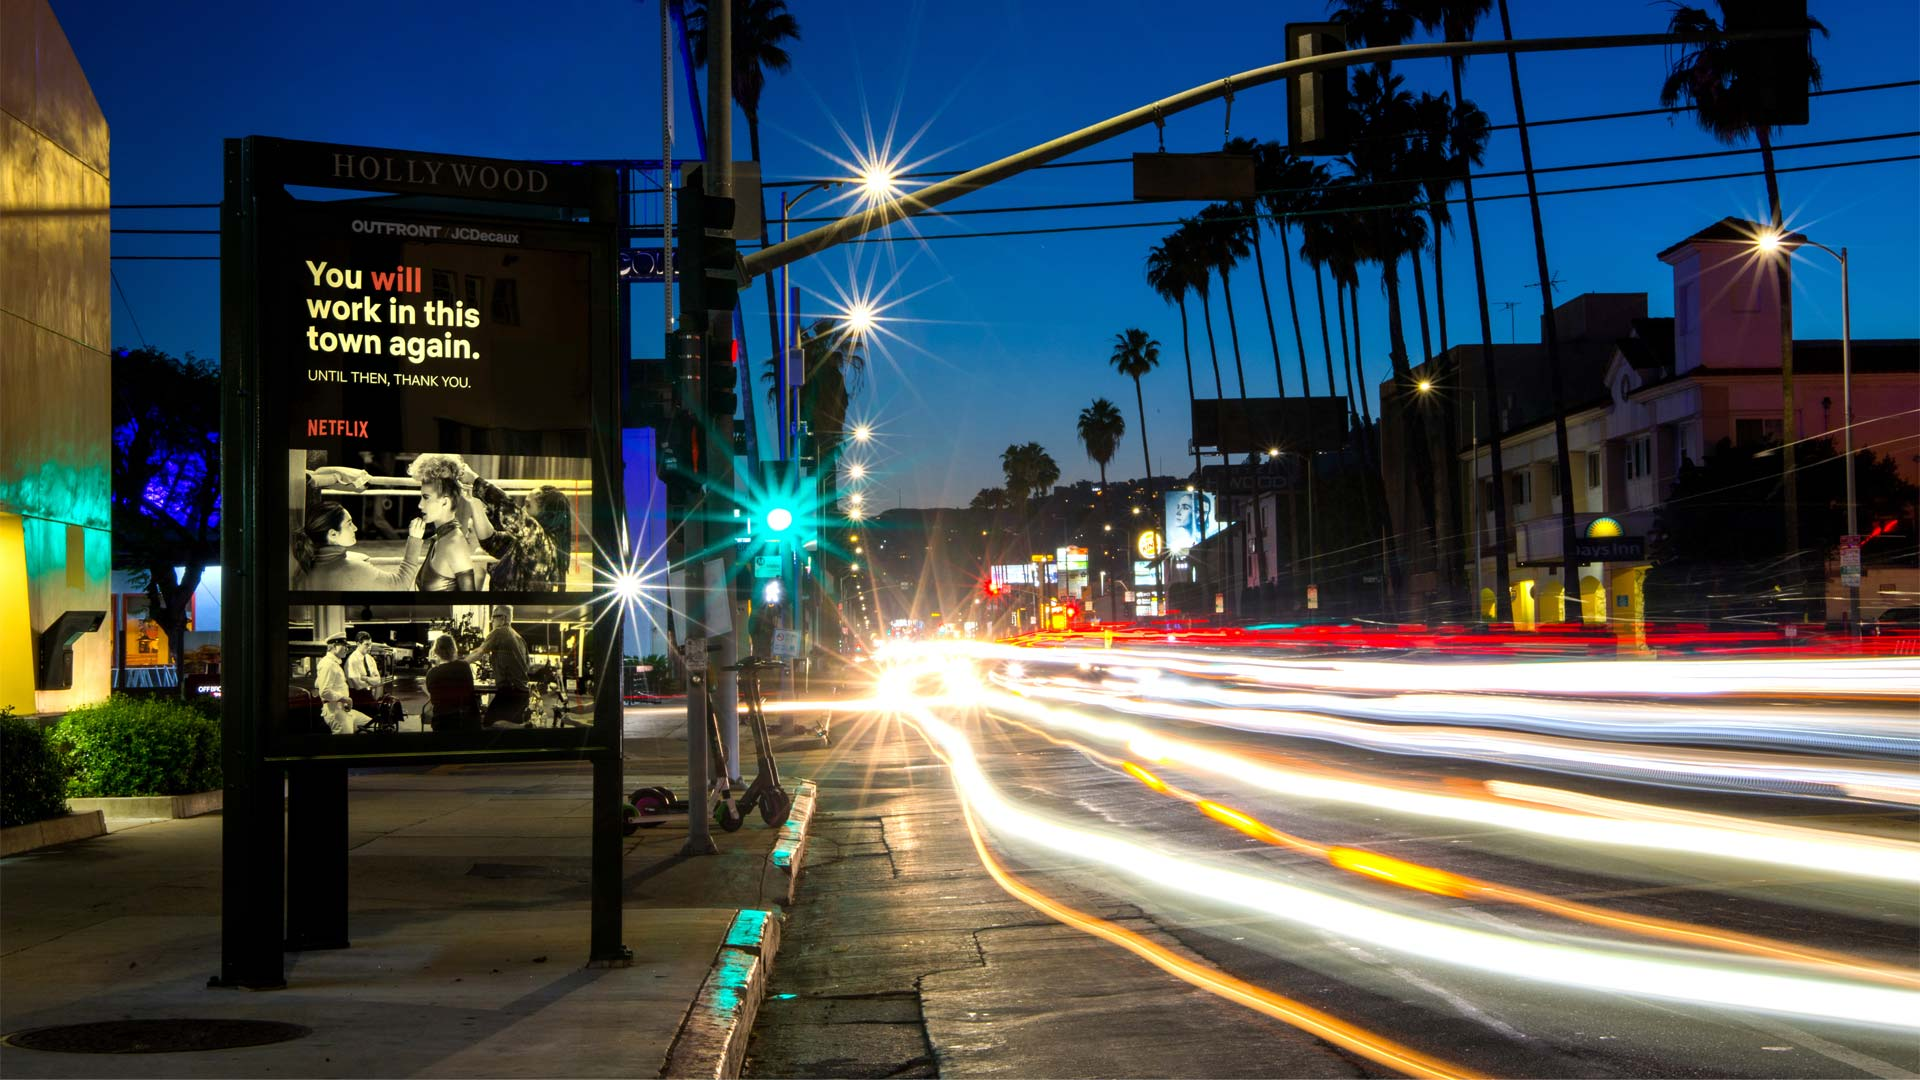 netflix street furniture out of home advertising in los angeles california